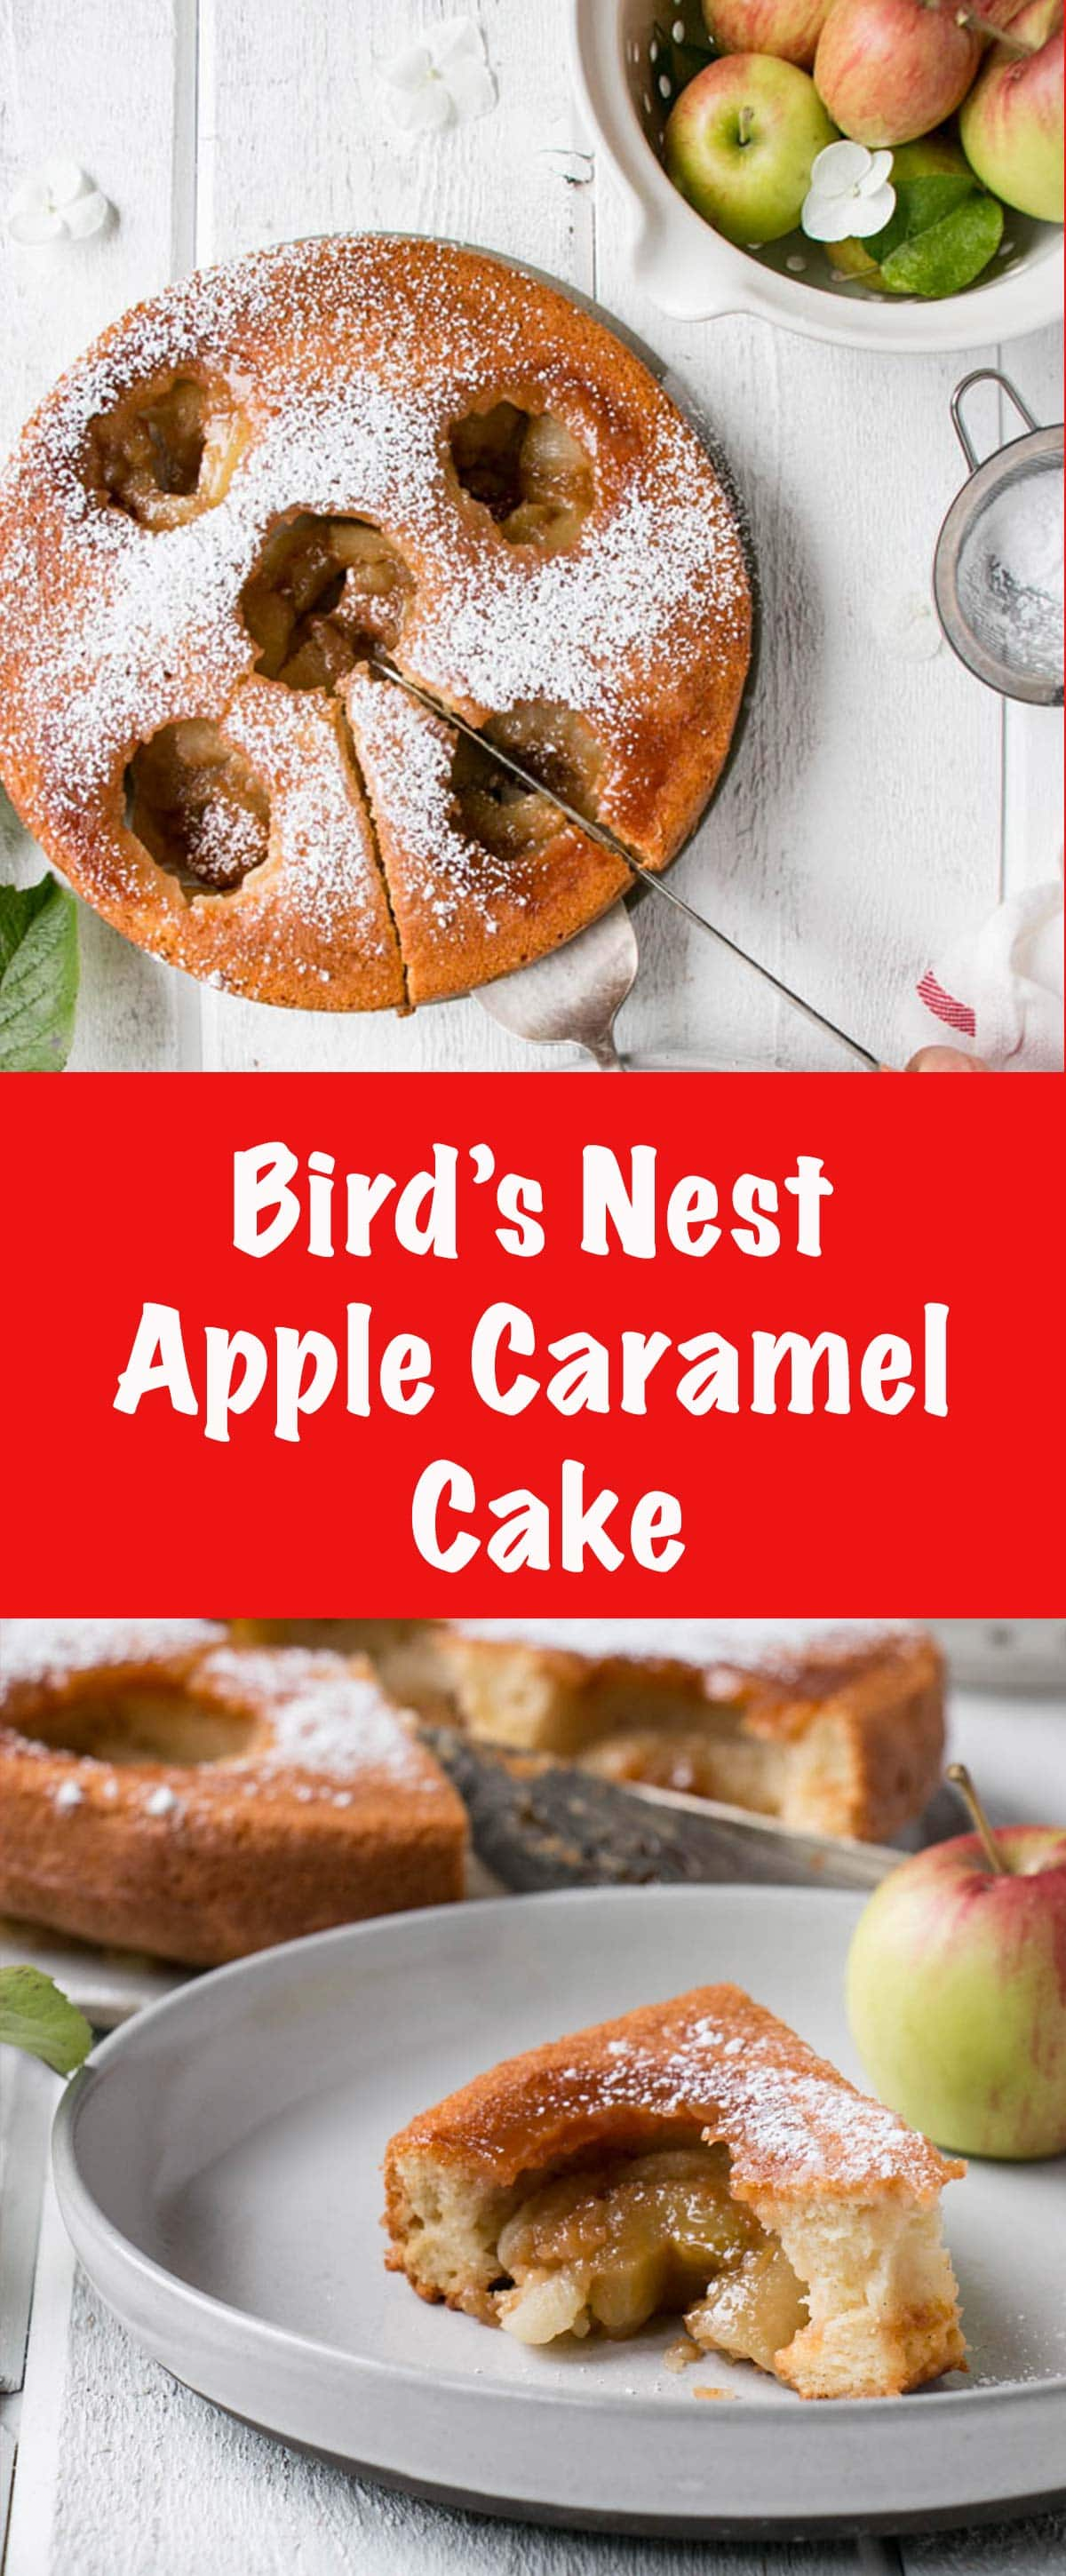 Bird's Nest Apple Caramel Cake is an easy cake to prepare and celebrate the delicious Fall apple flavours.